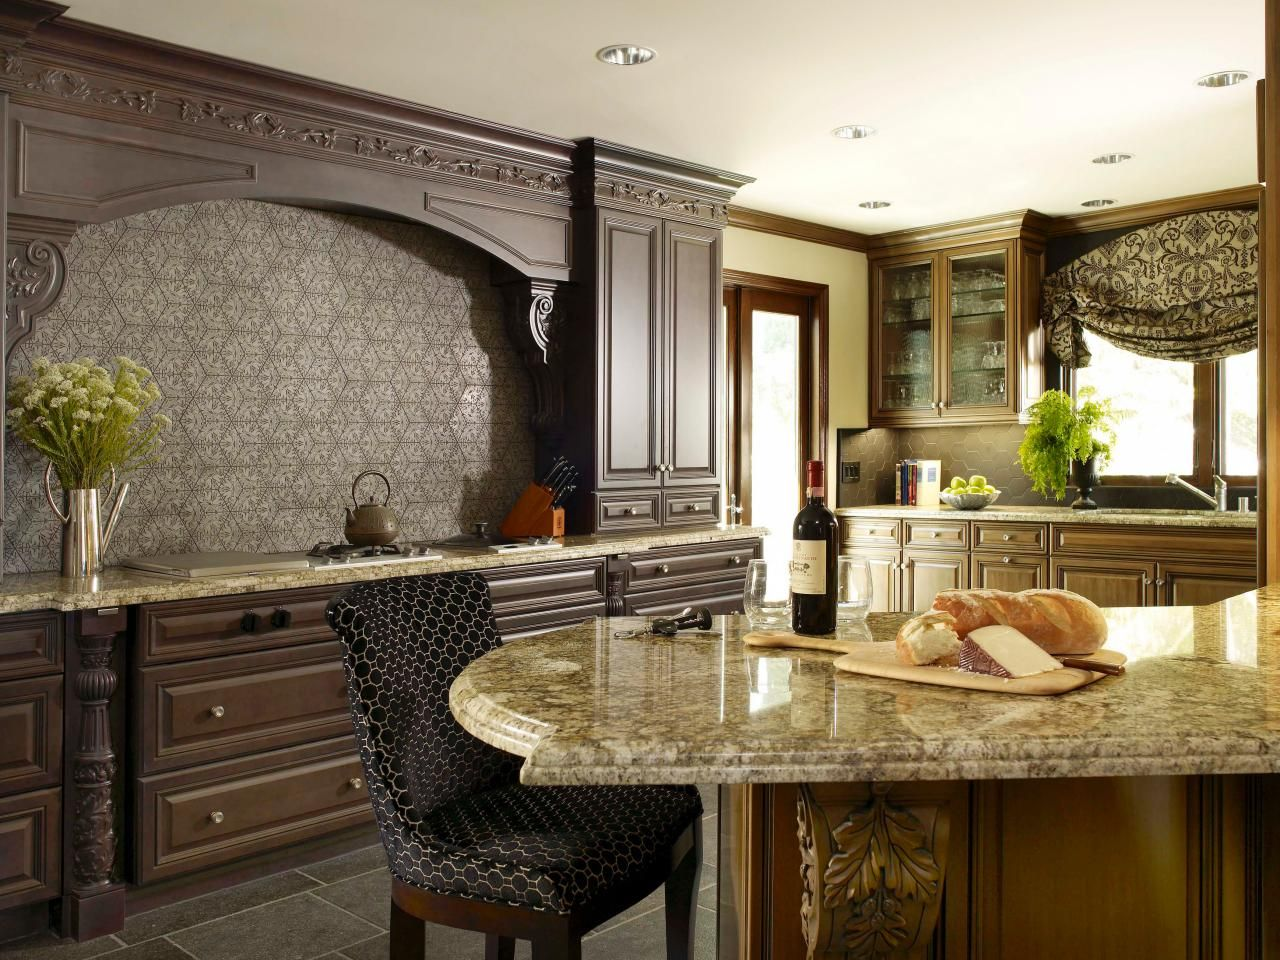 Kitchen Cabinets And Islands kitchen backsplashes | dark wood, concrete and moldings